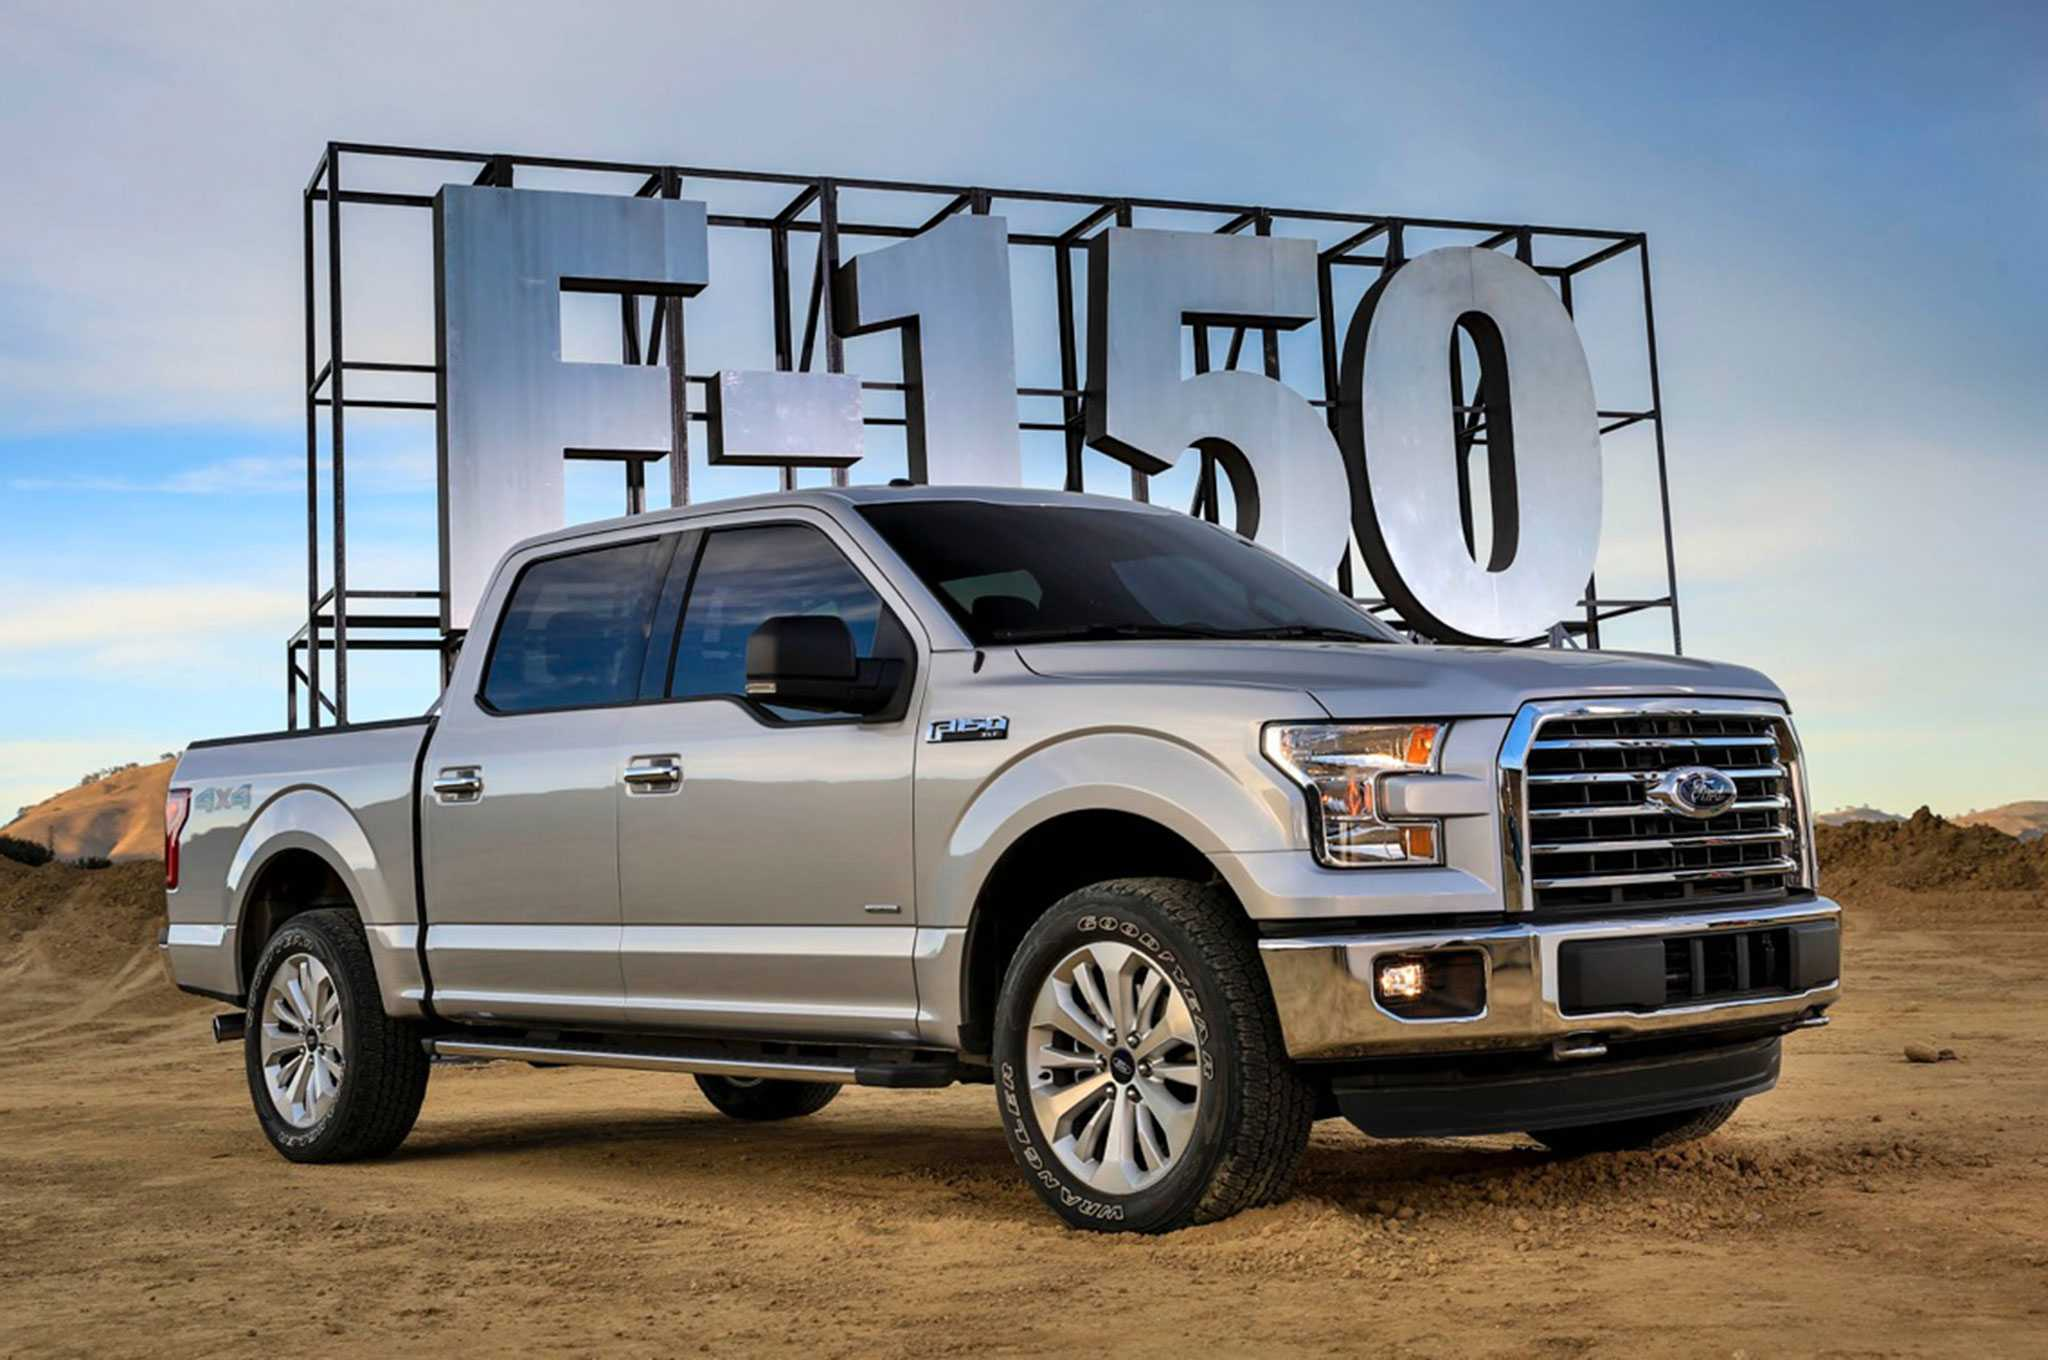 2017 Ford F-150 Introduces New 3.5 Liter EcoBoost Engine